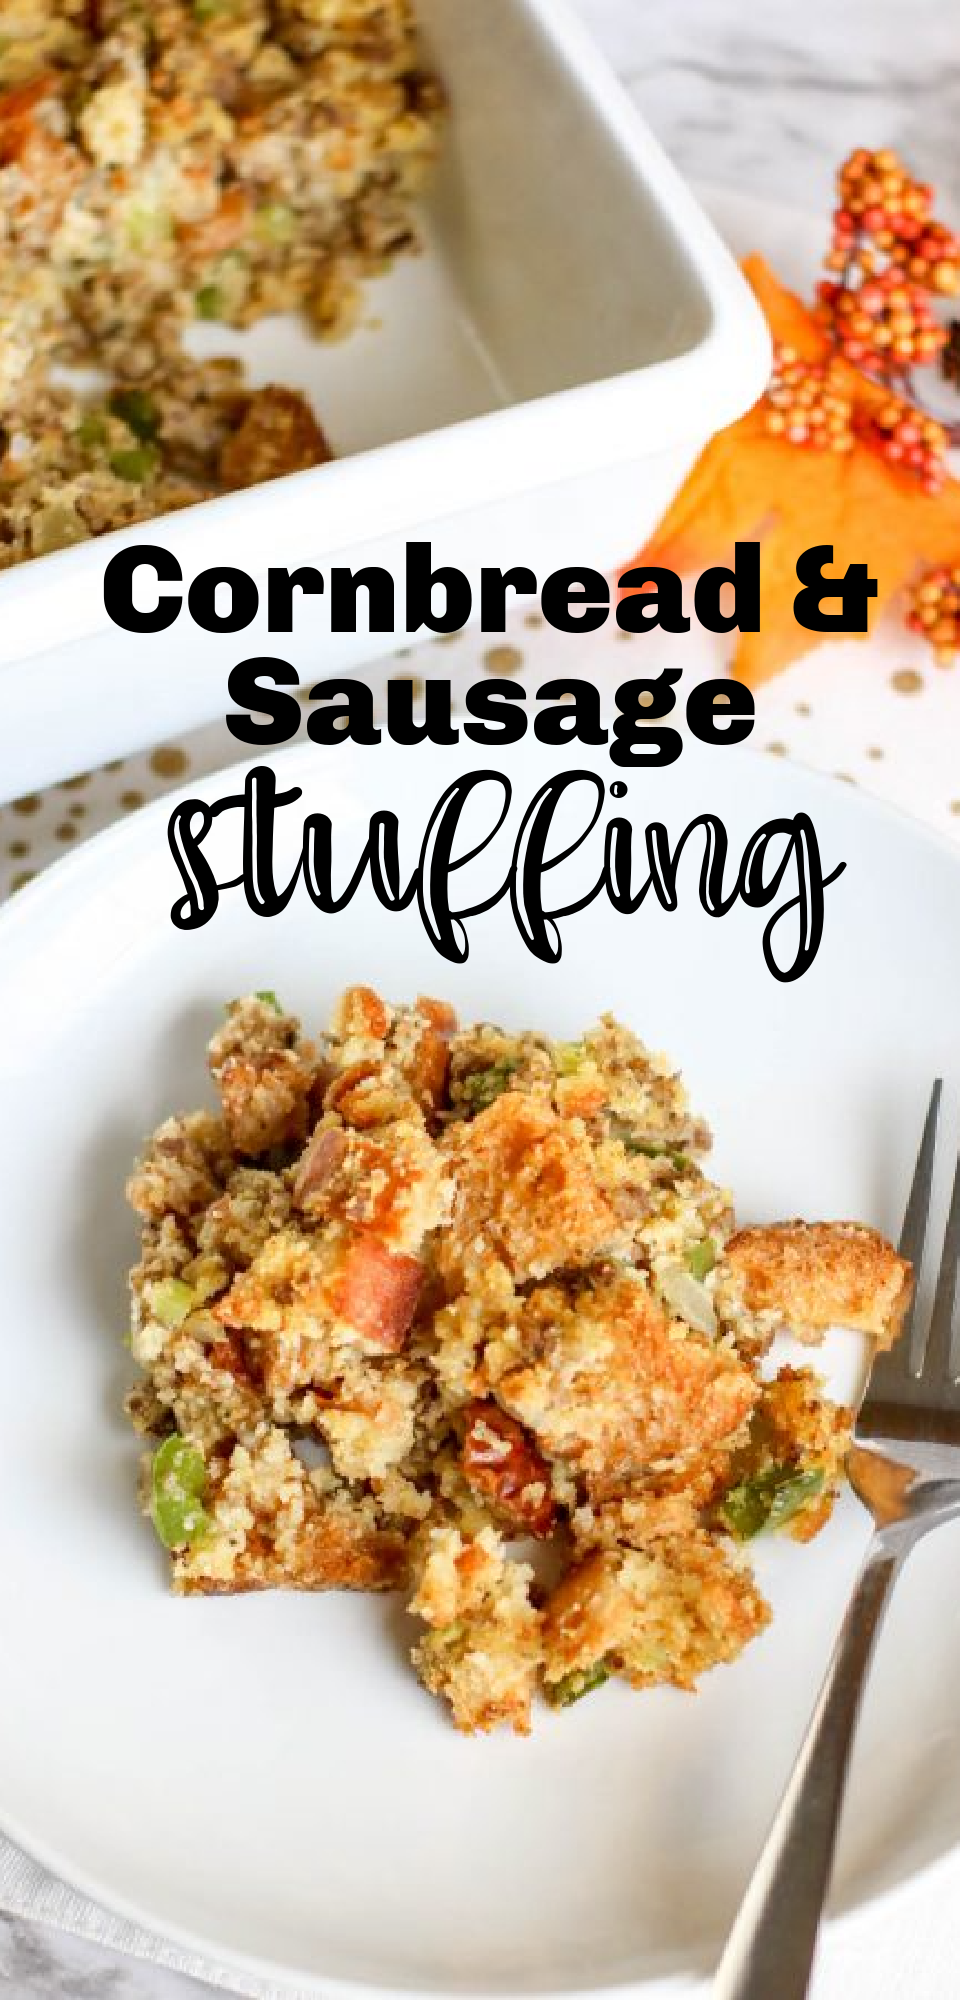 Want to level up your dressing game? This cornbread based dressing with sausage is so savory and addicting. It's perfect for family dinner. via @simplysidedishes89